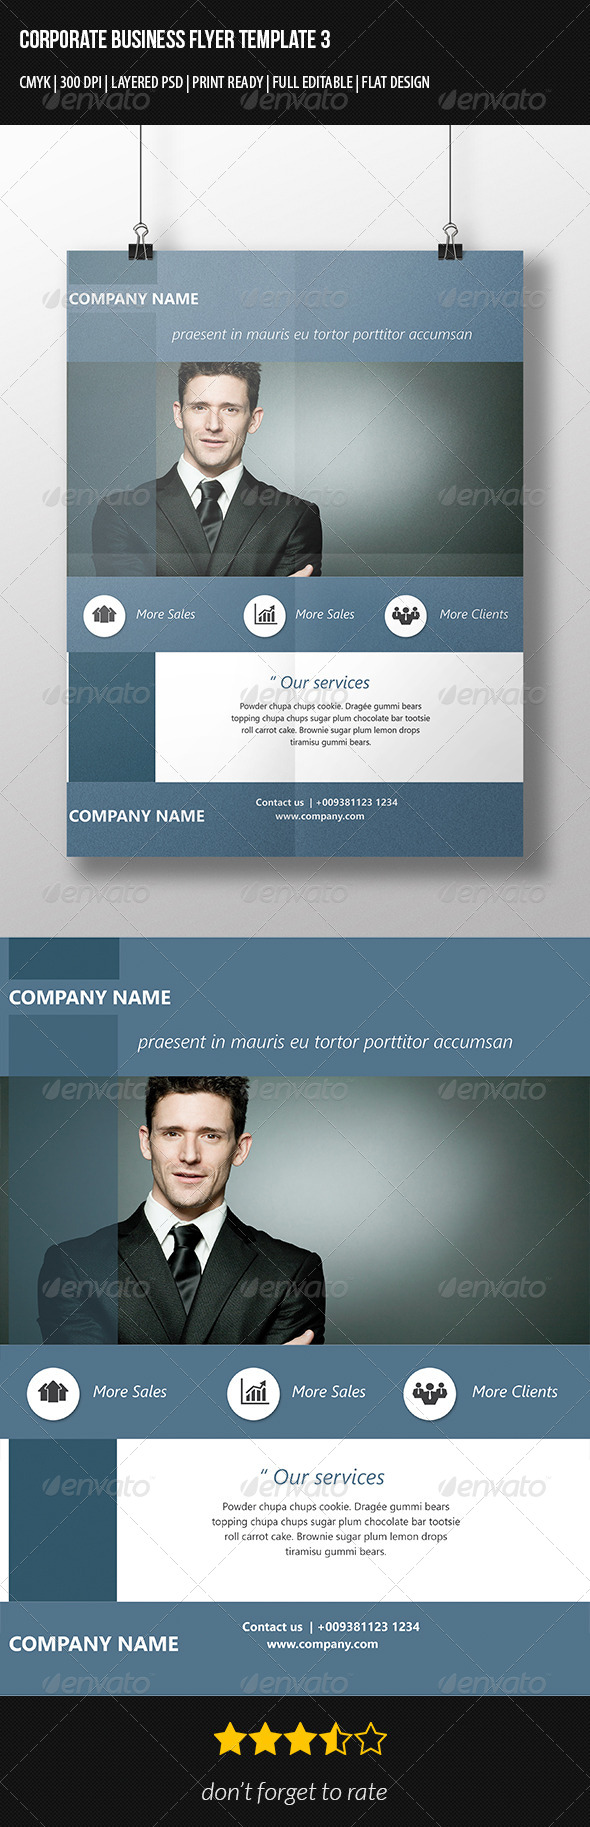 Corporate Flyer Business Template 2 - Corporate Flyers